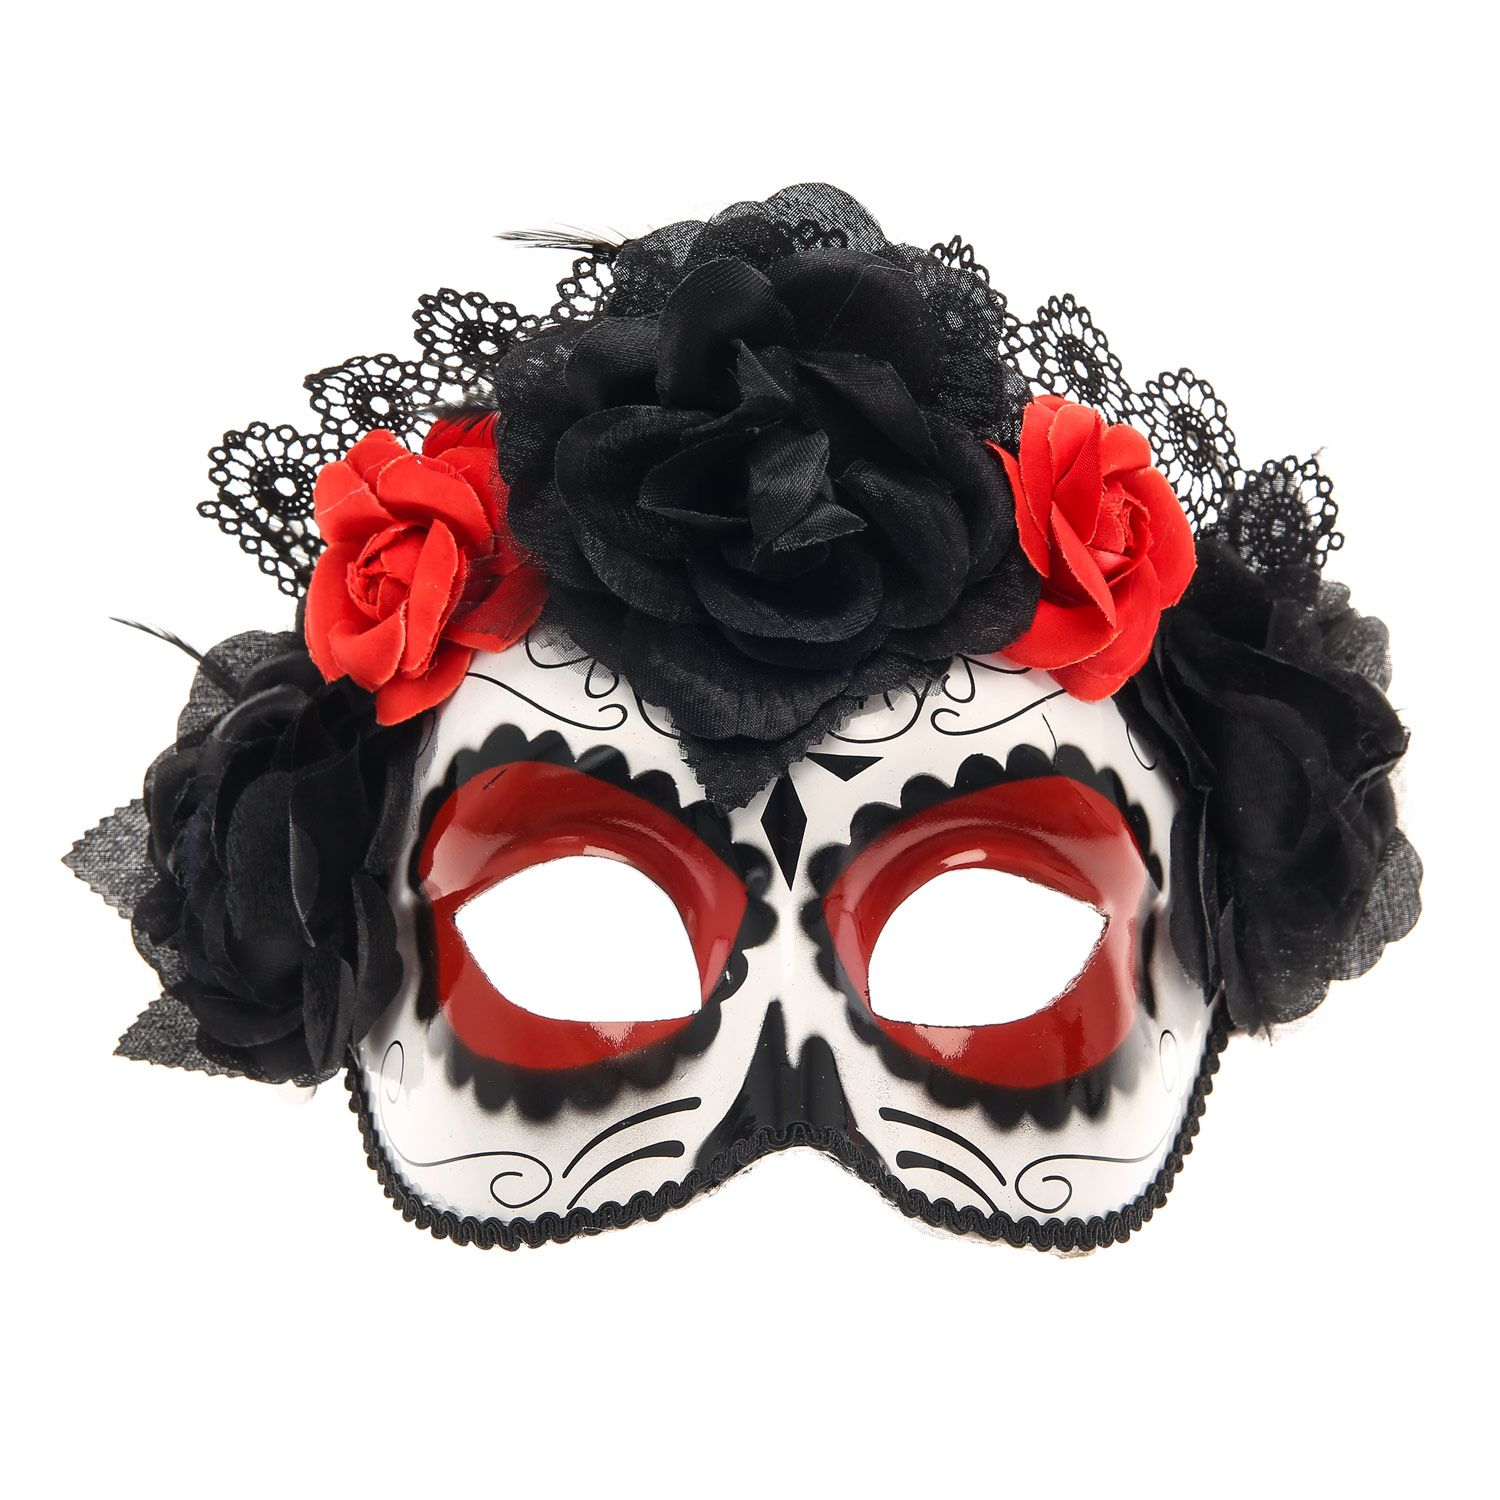 Day of the dead sugar skull Halloween costume #ClairesScares ...